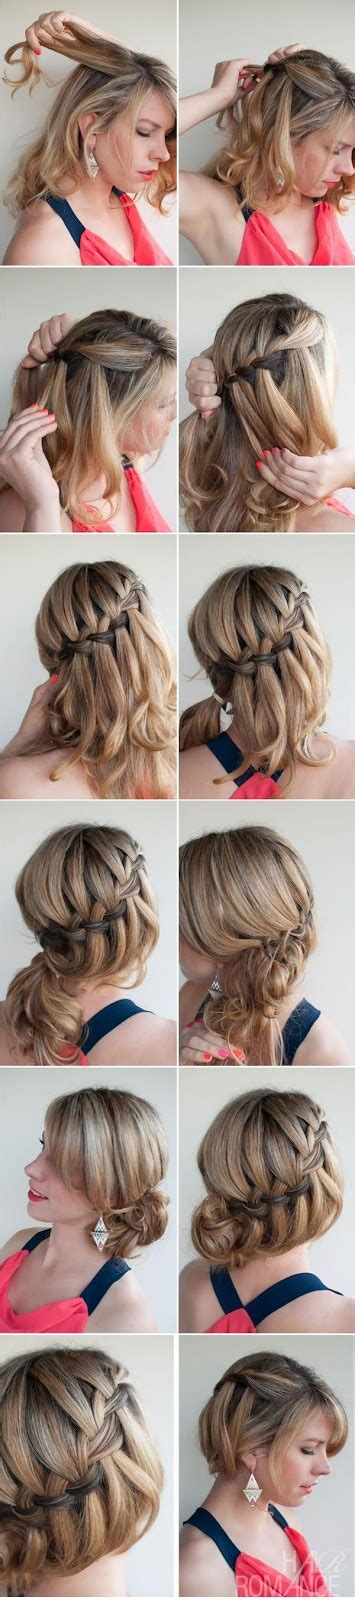 diy hairstyles waterfall braid 13 interesting tutorials for everyday hairstyles pretty